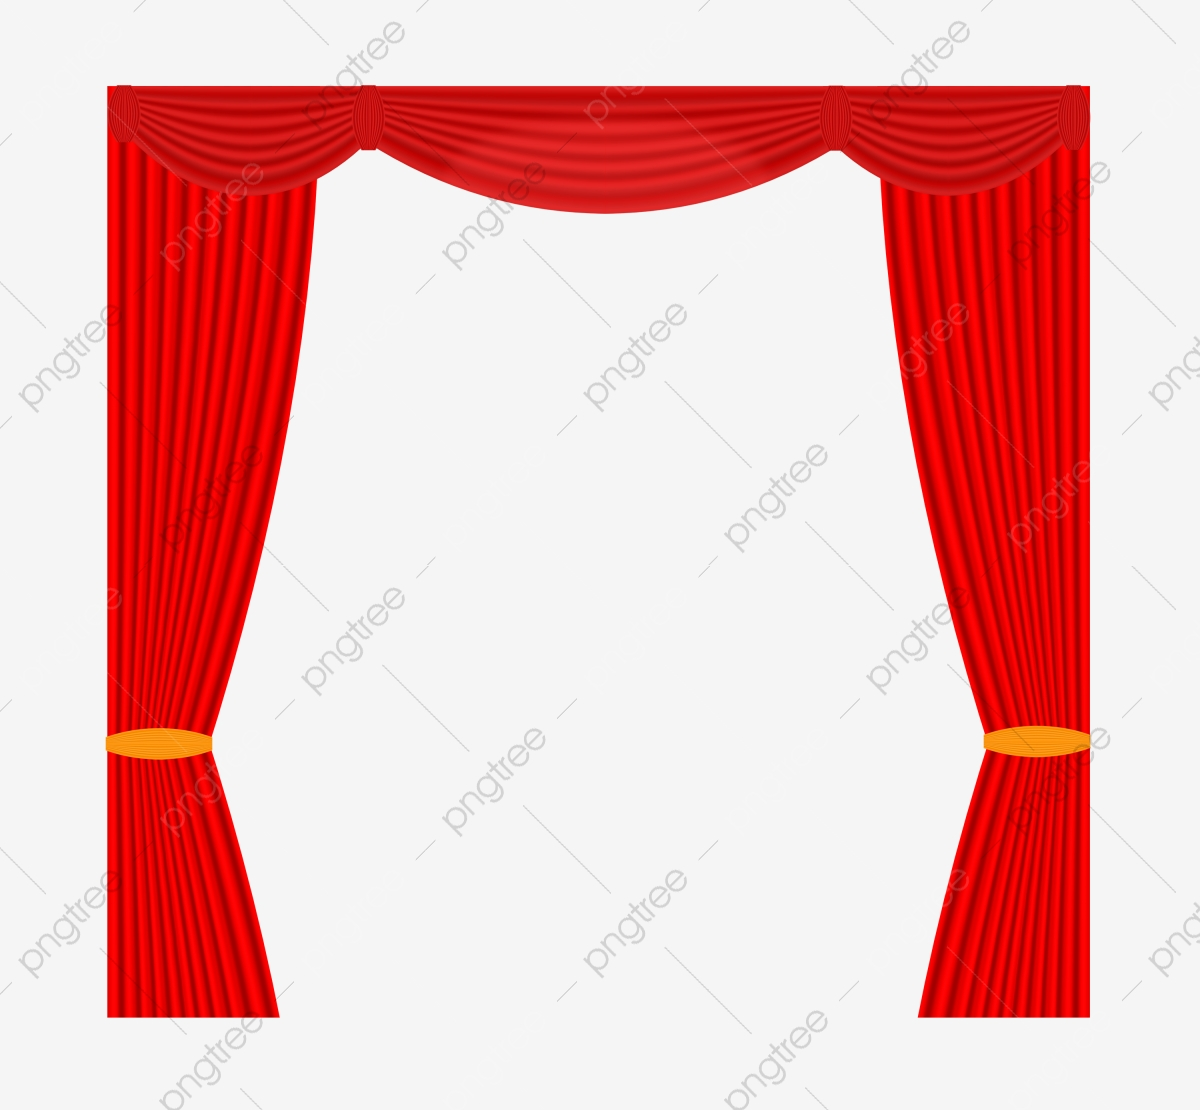 Curtains clipart cloth. Hand drawn curtain stage